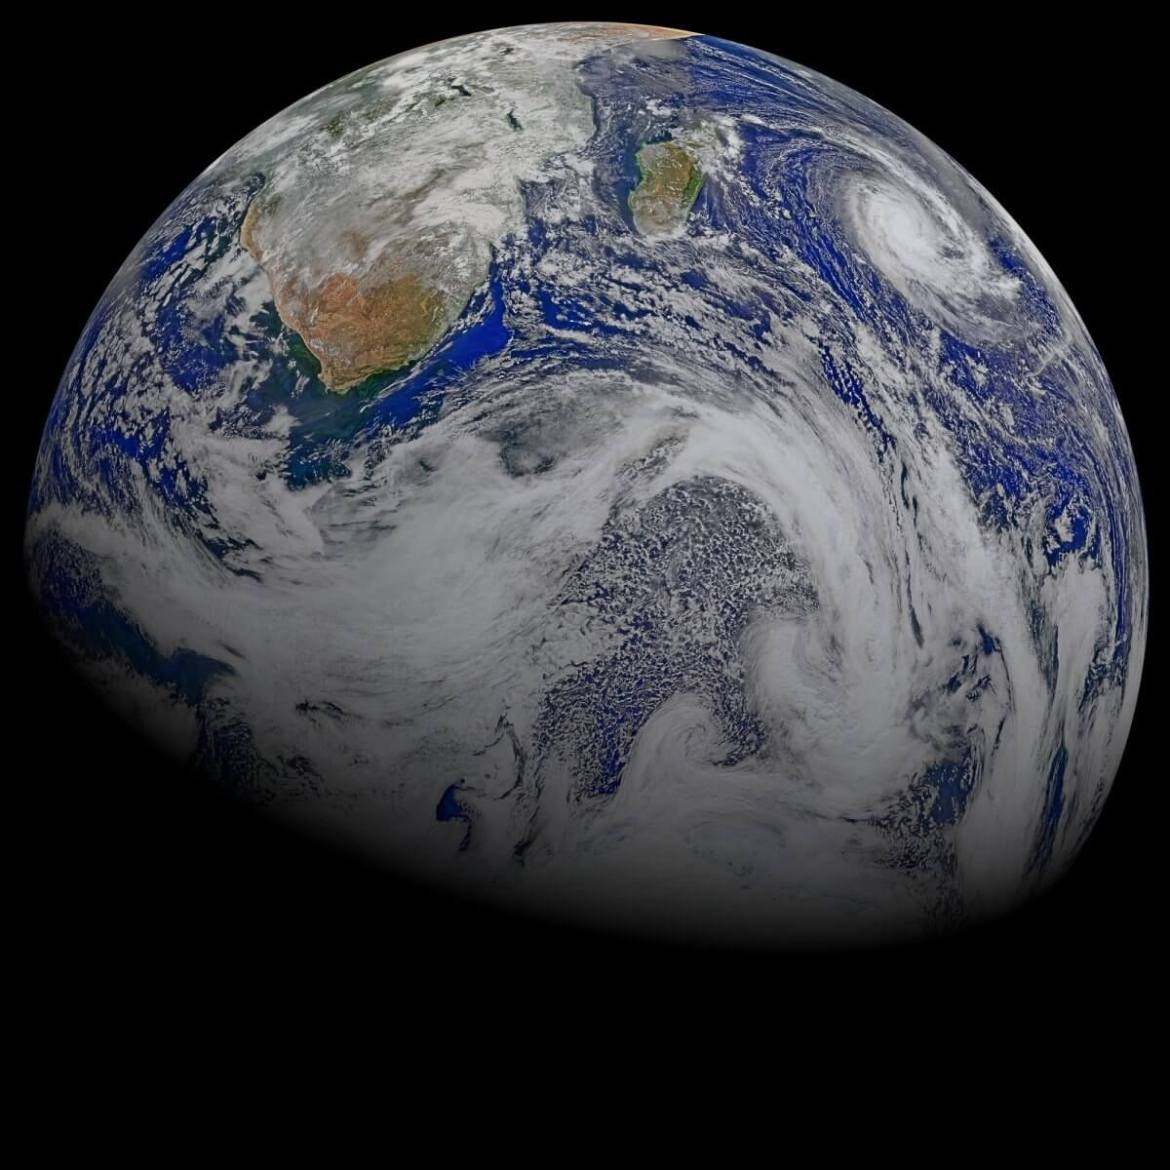 A few rare satellites enjoy a full view of Earth from thousands or even a million miles away.